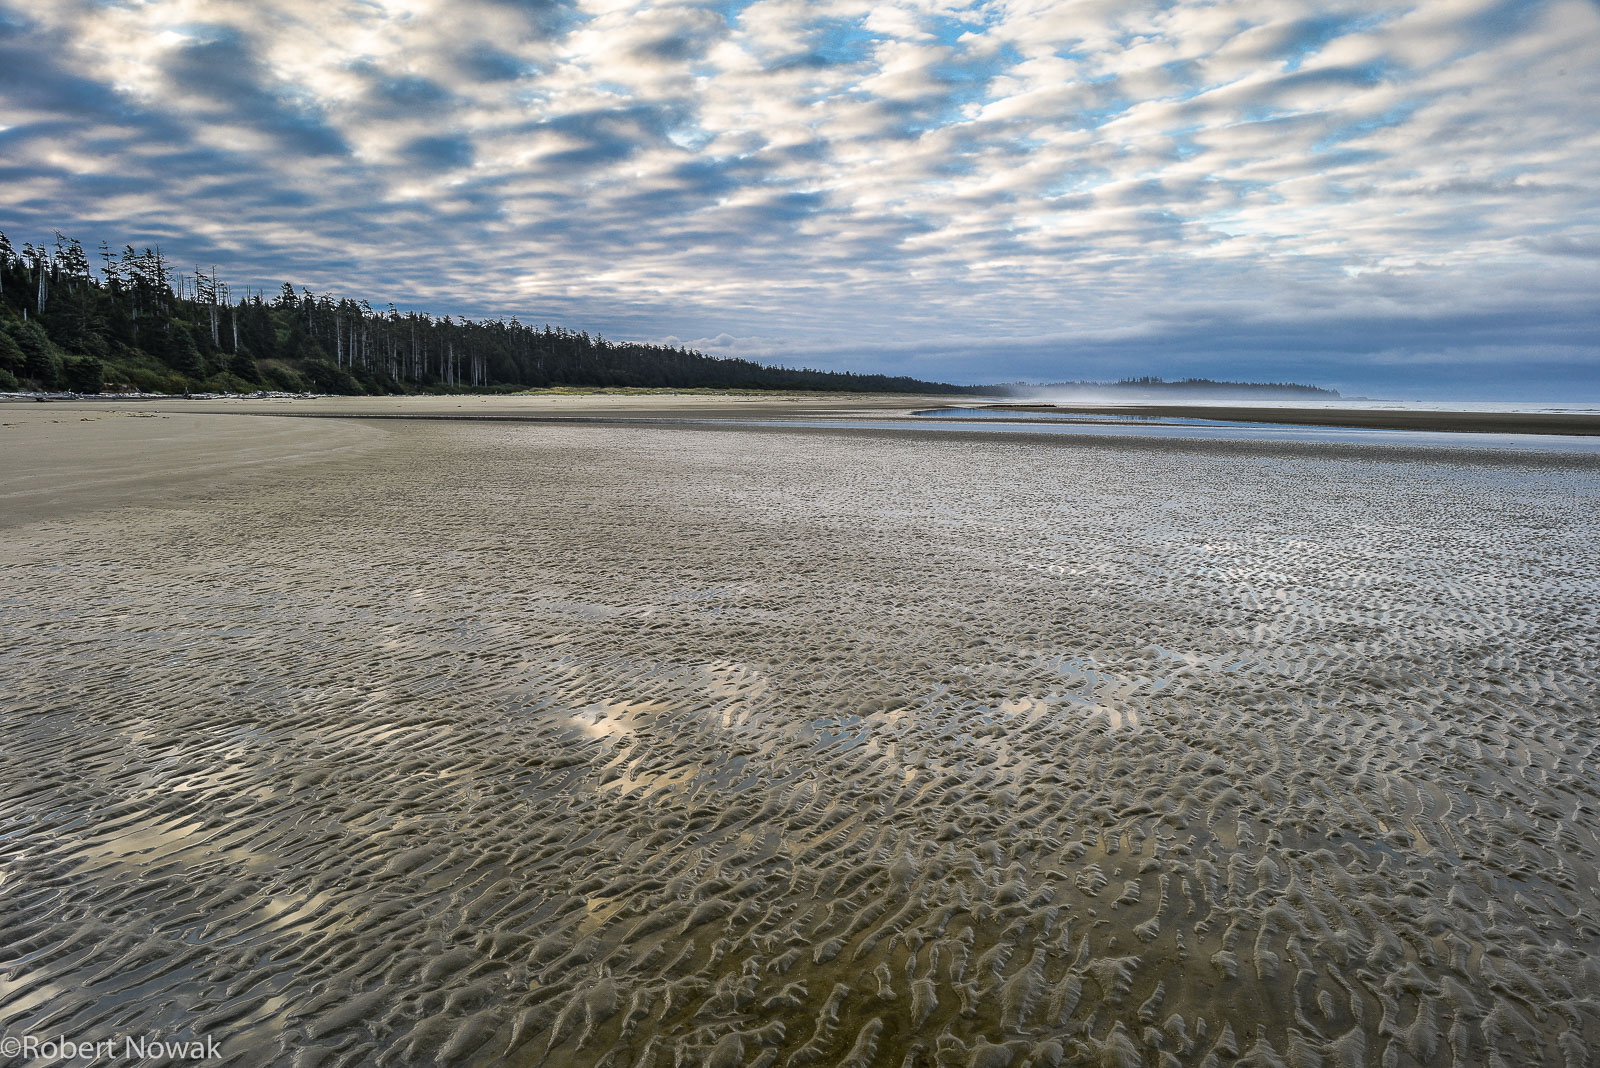 Combers Beach, Pacific Rim National Park, British Columbia, Canada, sky, reflection, sand, ripples, photo